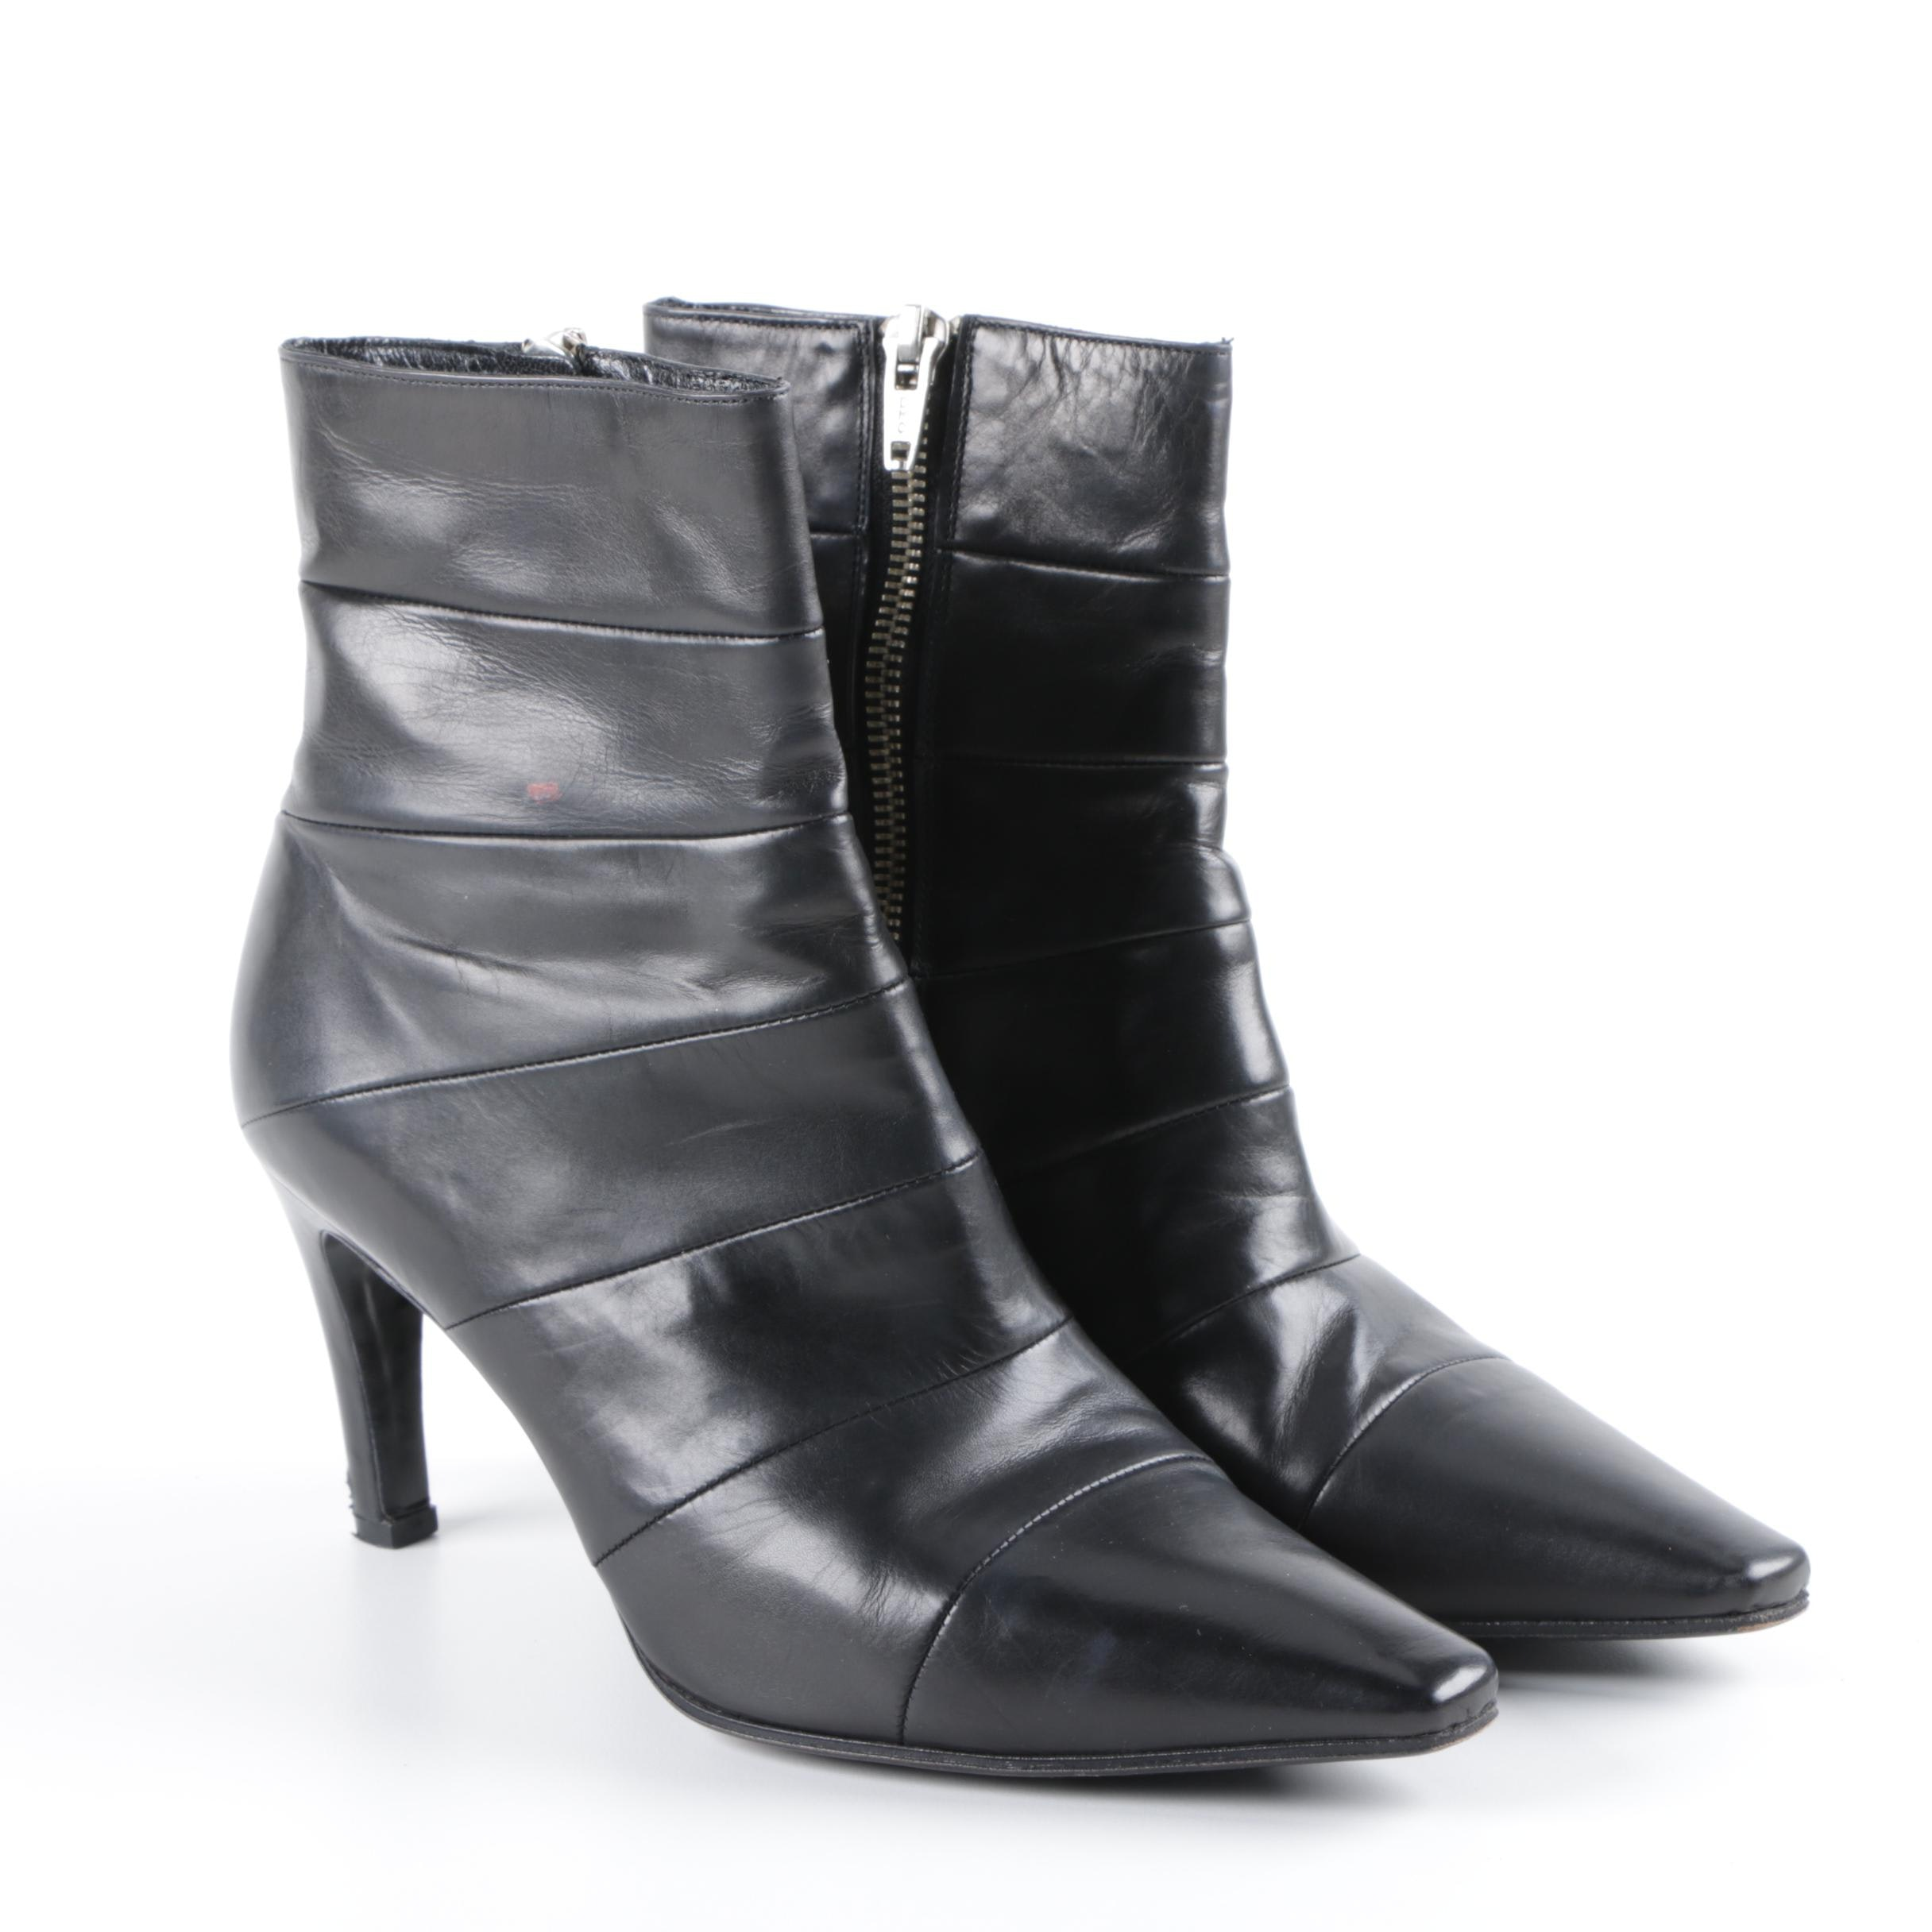 Women's Stephane Kélian Black Leather Ankle Booties with Box